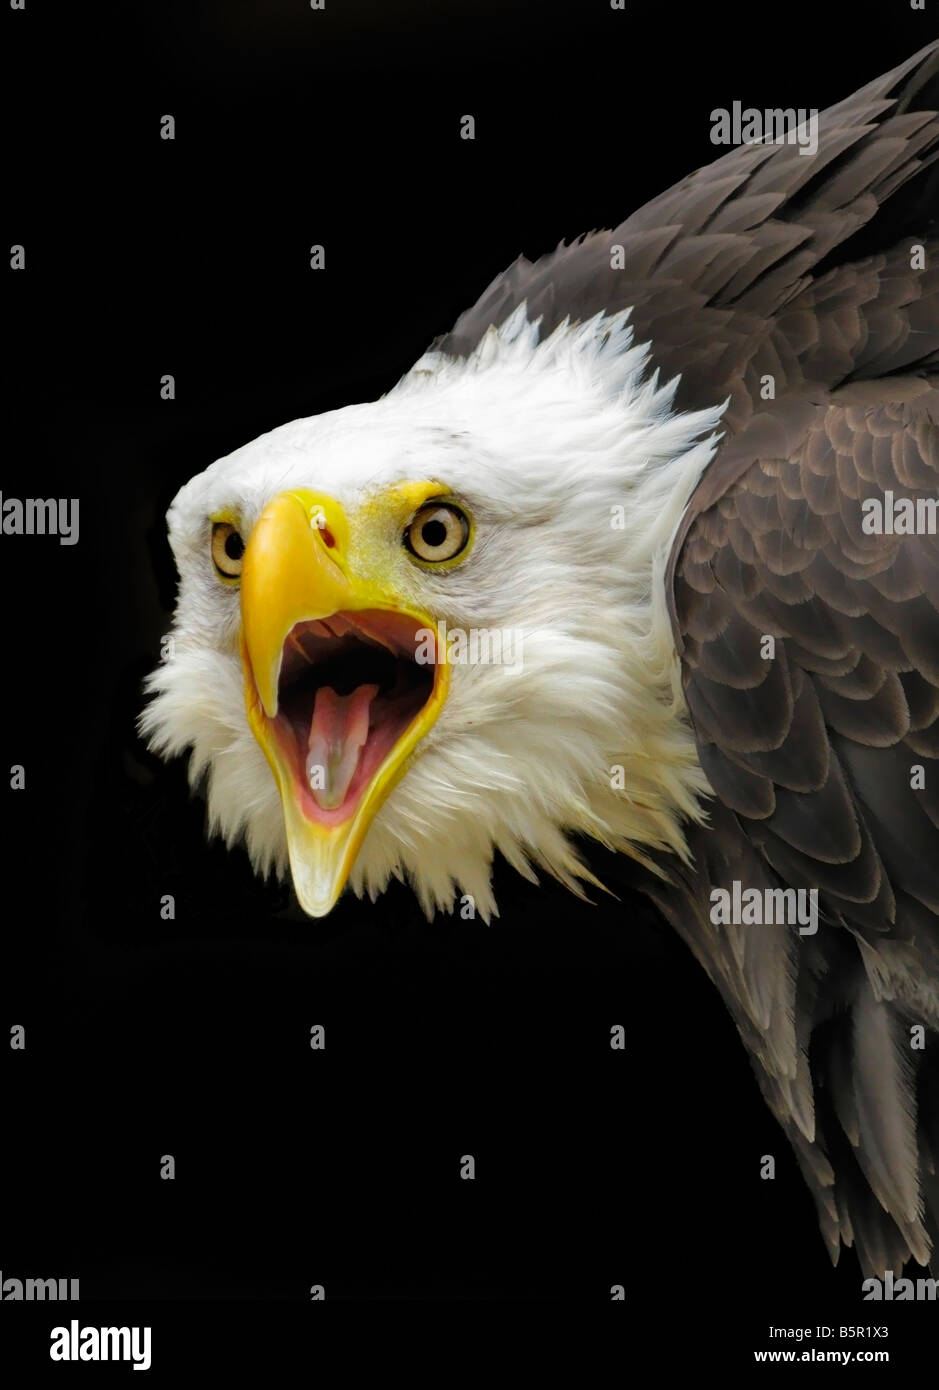 Head and shoulders of a captive 'bald eagle' against a black background. The beak is open. - Stock Image